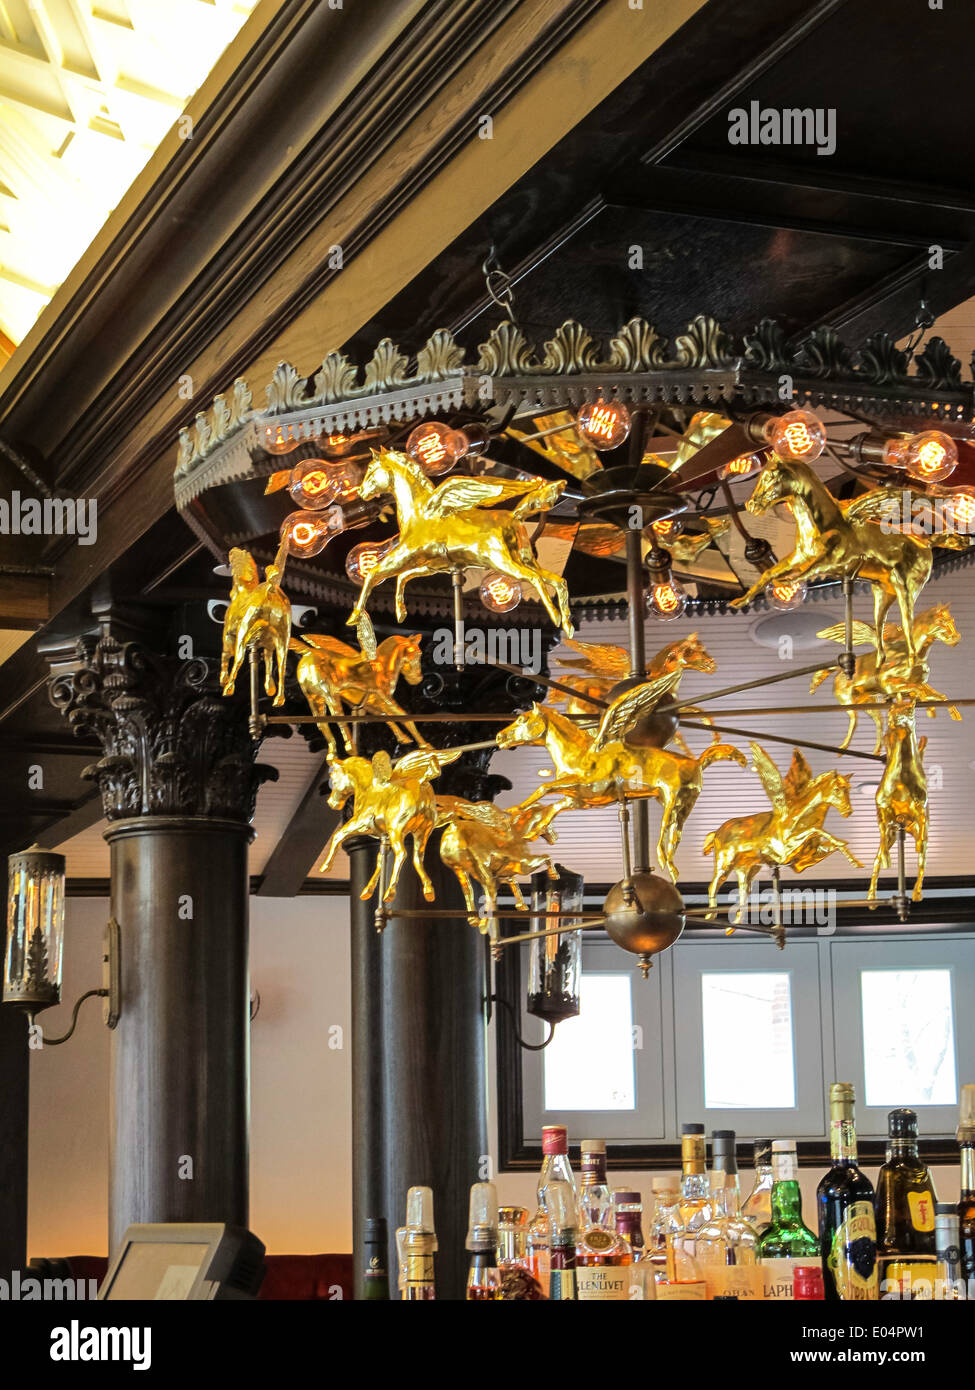 Golden rotating pegasus chandelier in bar room newly renovated golden rotating pegasus chandelier in bar room newly renovated tavern on the green restaurant nyc usa aloadofball Gallery